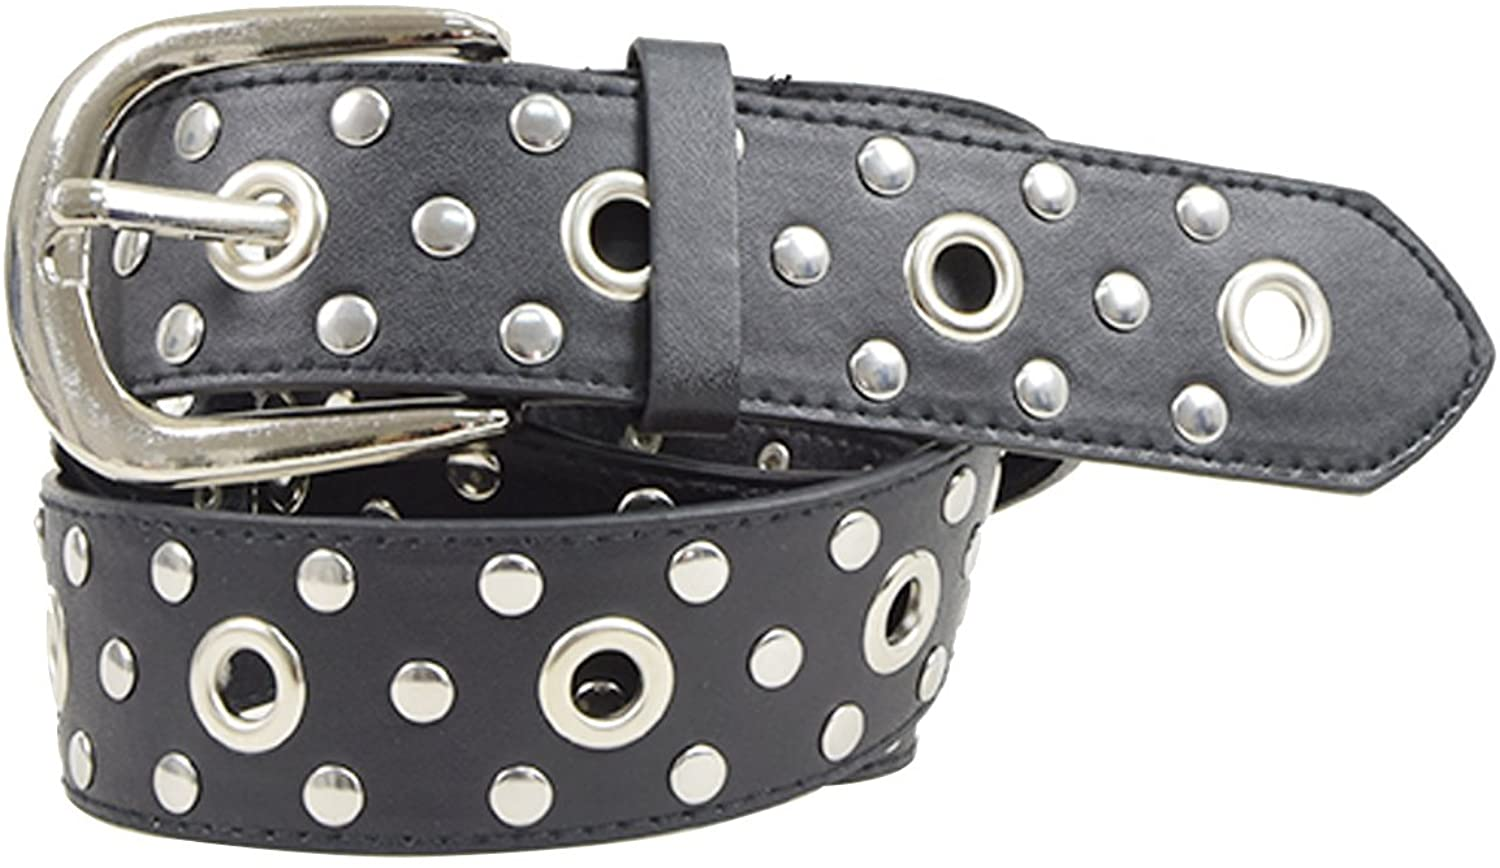 Very Last Shop Women's Punk Rock & Roll Rivets Studded PU Belt with Full Holes 2 Colors